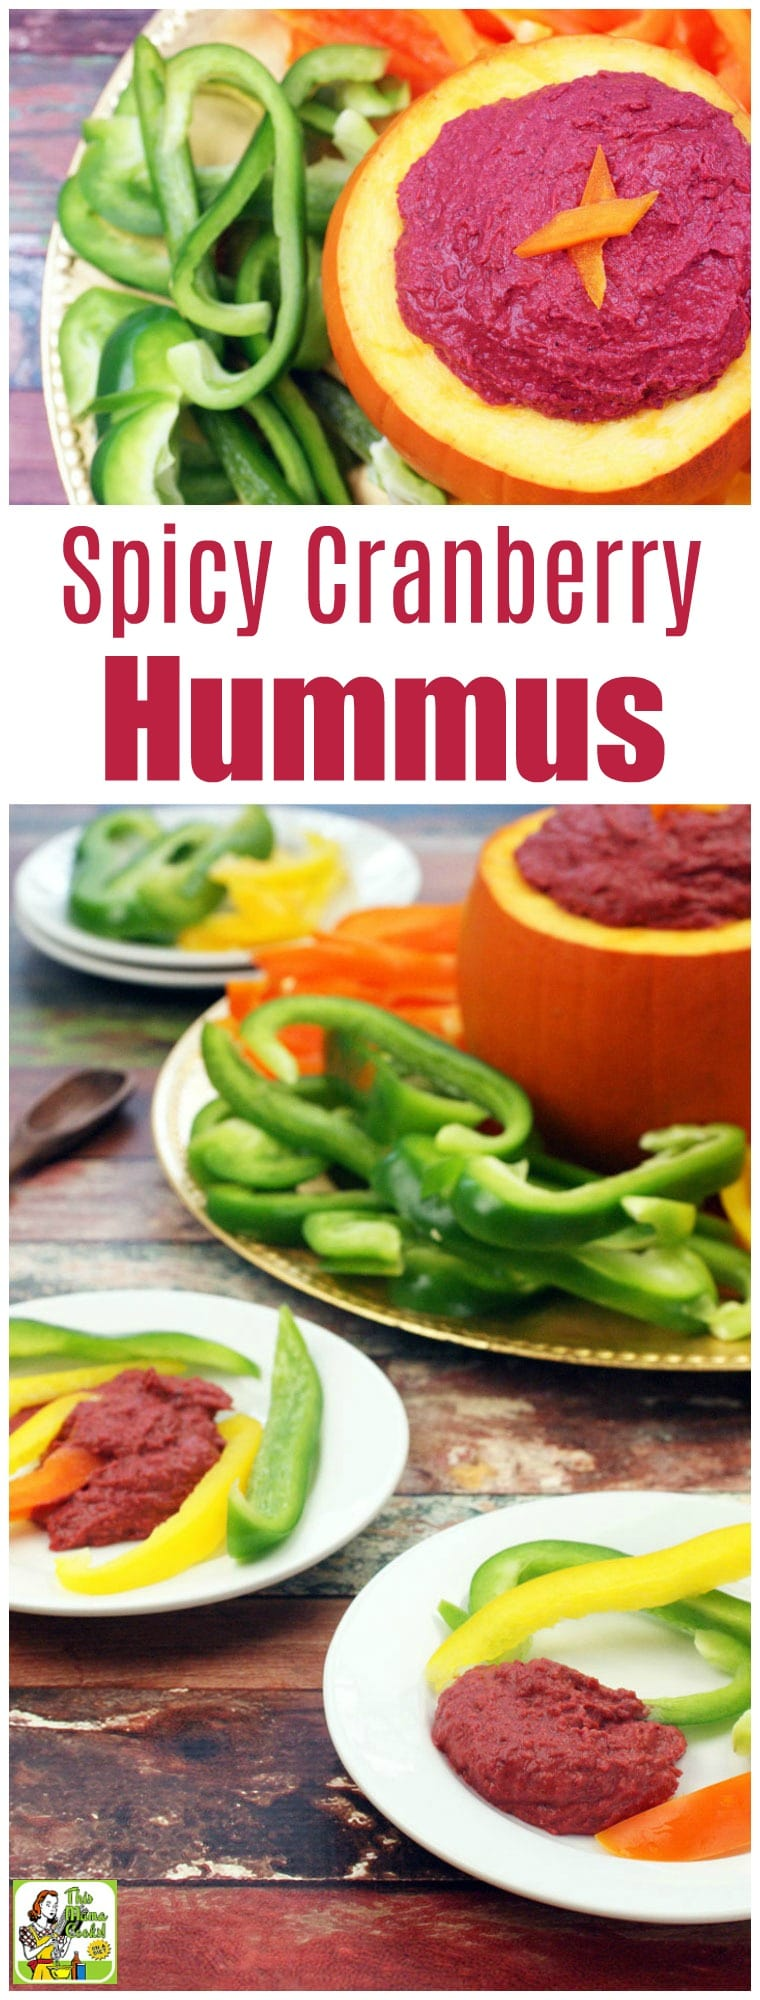 Serve this spicy hummus recipe as a dip at your next party. This vegan hummus recipe can be made in 20 minutes or less. Spicy Cranberry Hummus is made with chickpeas and cranberry sauce. #recipes #easy #recipeoftheday #glutenfree #easyrecipe #easyrecipes #glutenfreerecipes #thanksgiving #thanksgivingrecipes #christmas #christmasrecipes #veganfood #vegan #veganrecipes #cranberry #cranberries #appetizers #appetizerrecipes